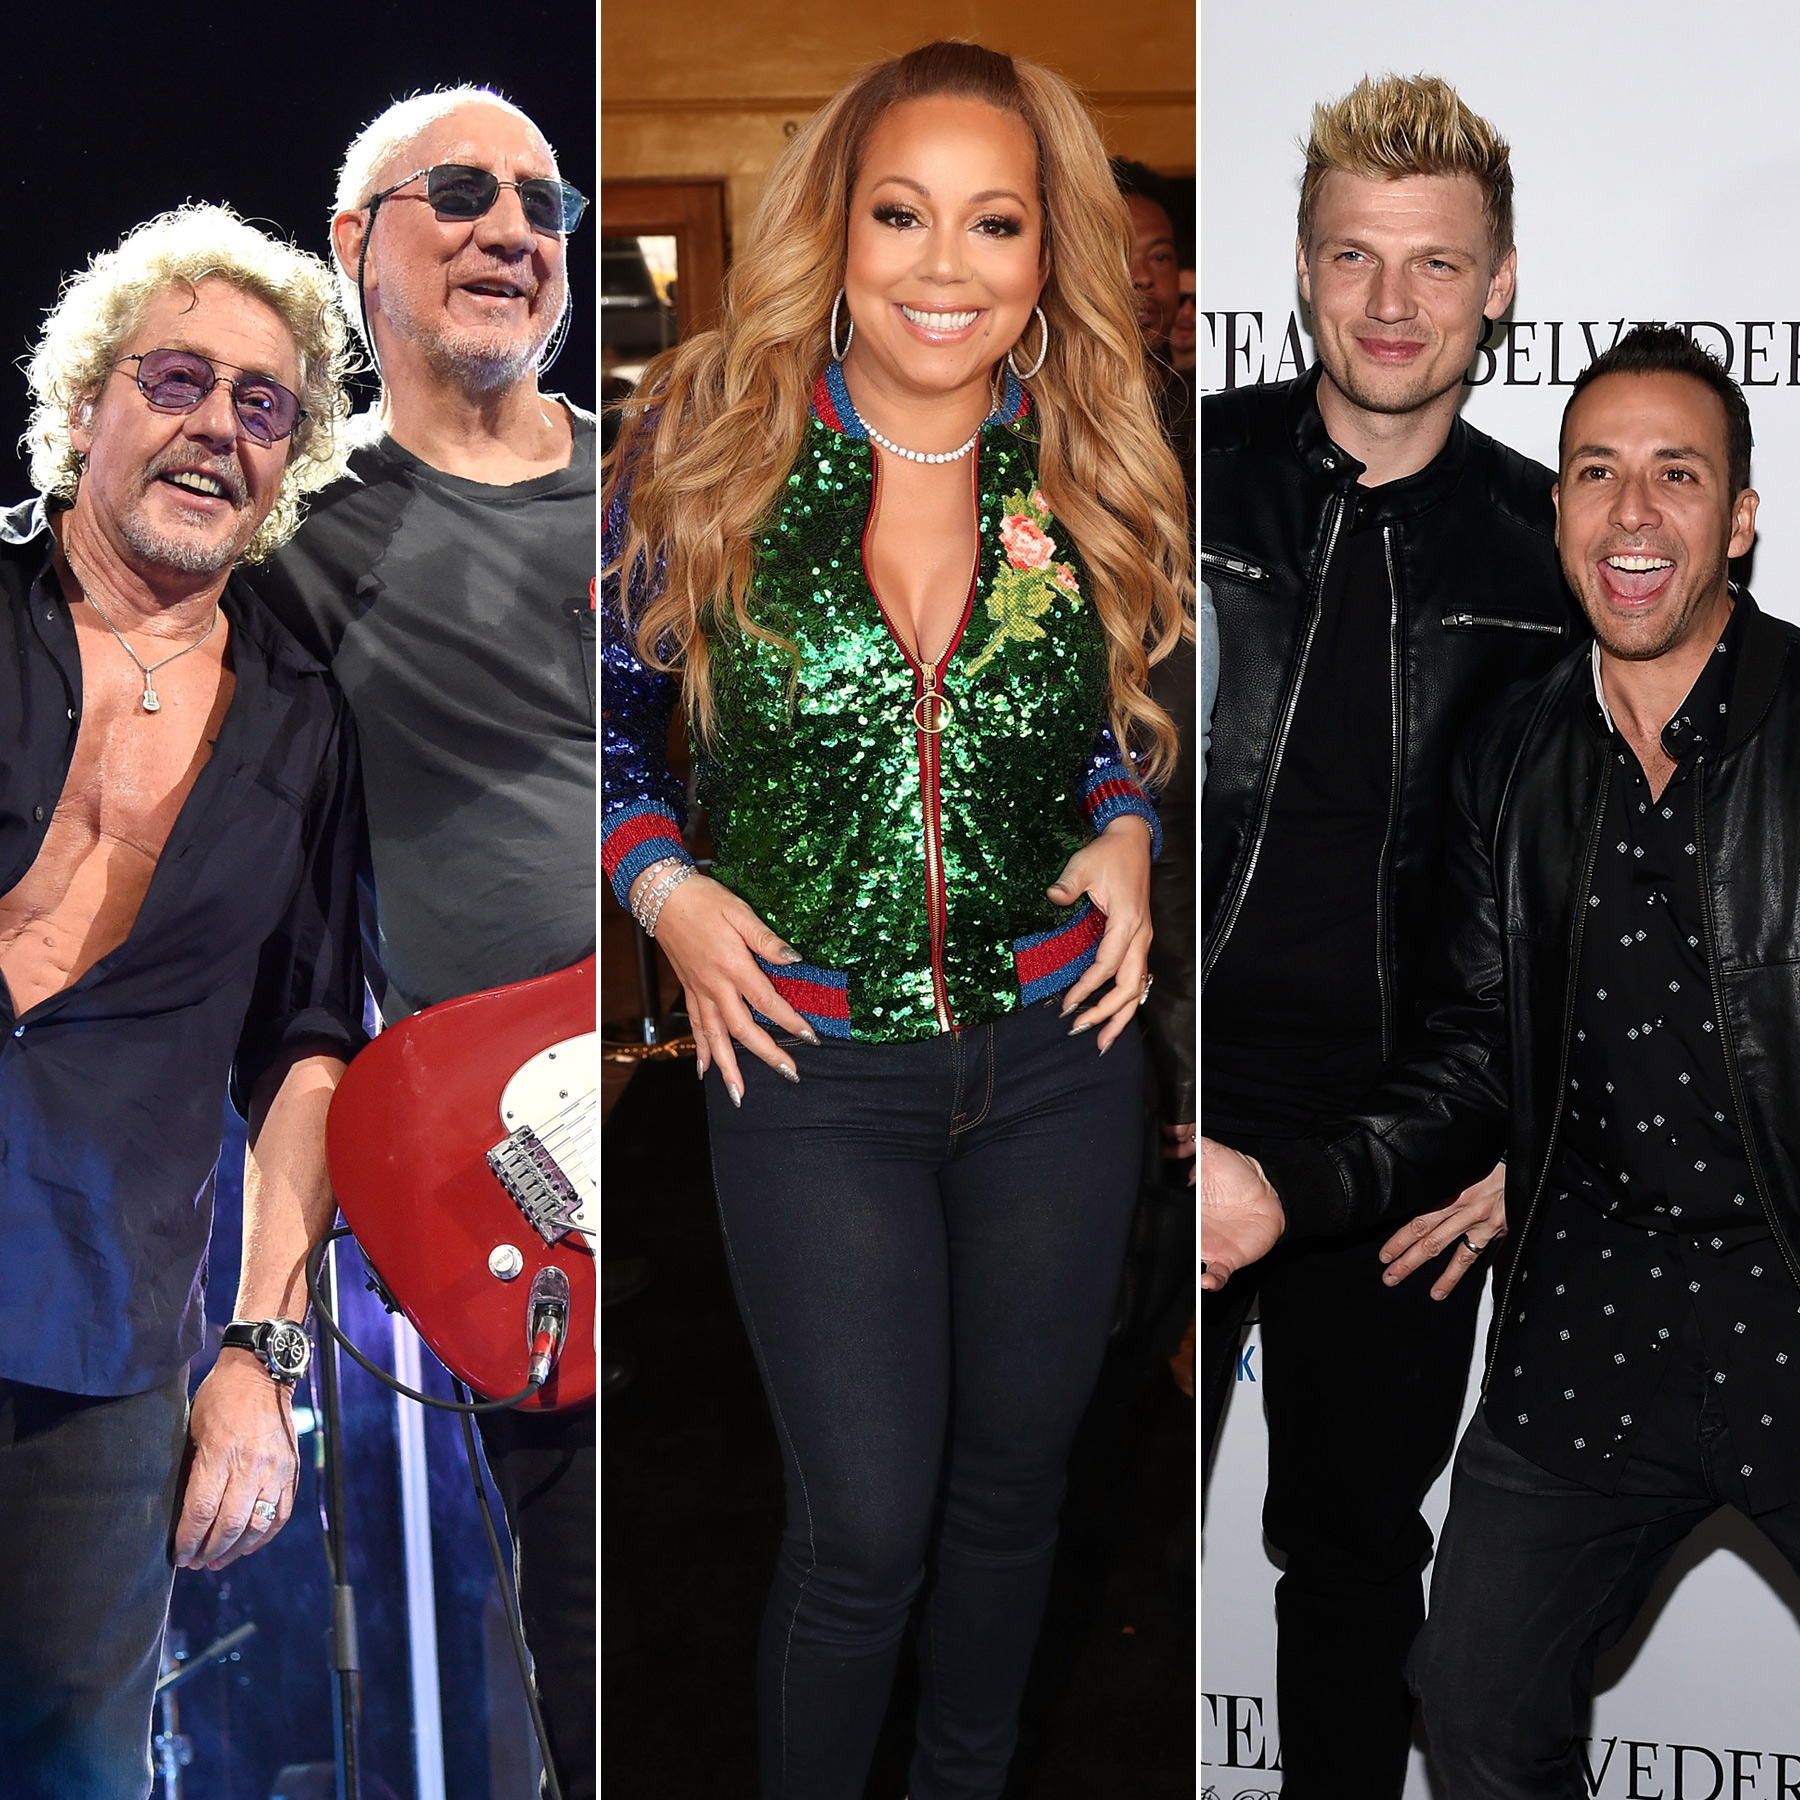 The Who, Mariah Carey and Backstreet Boys